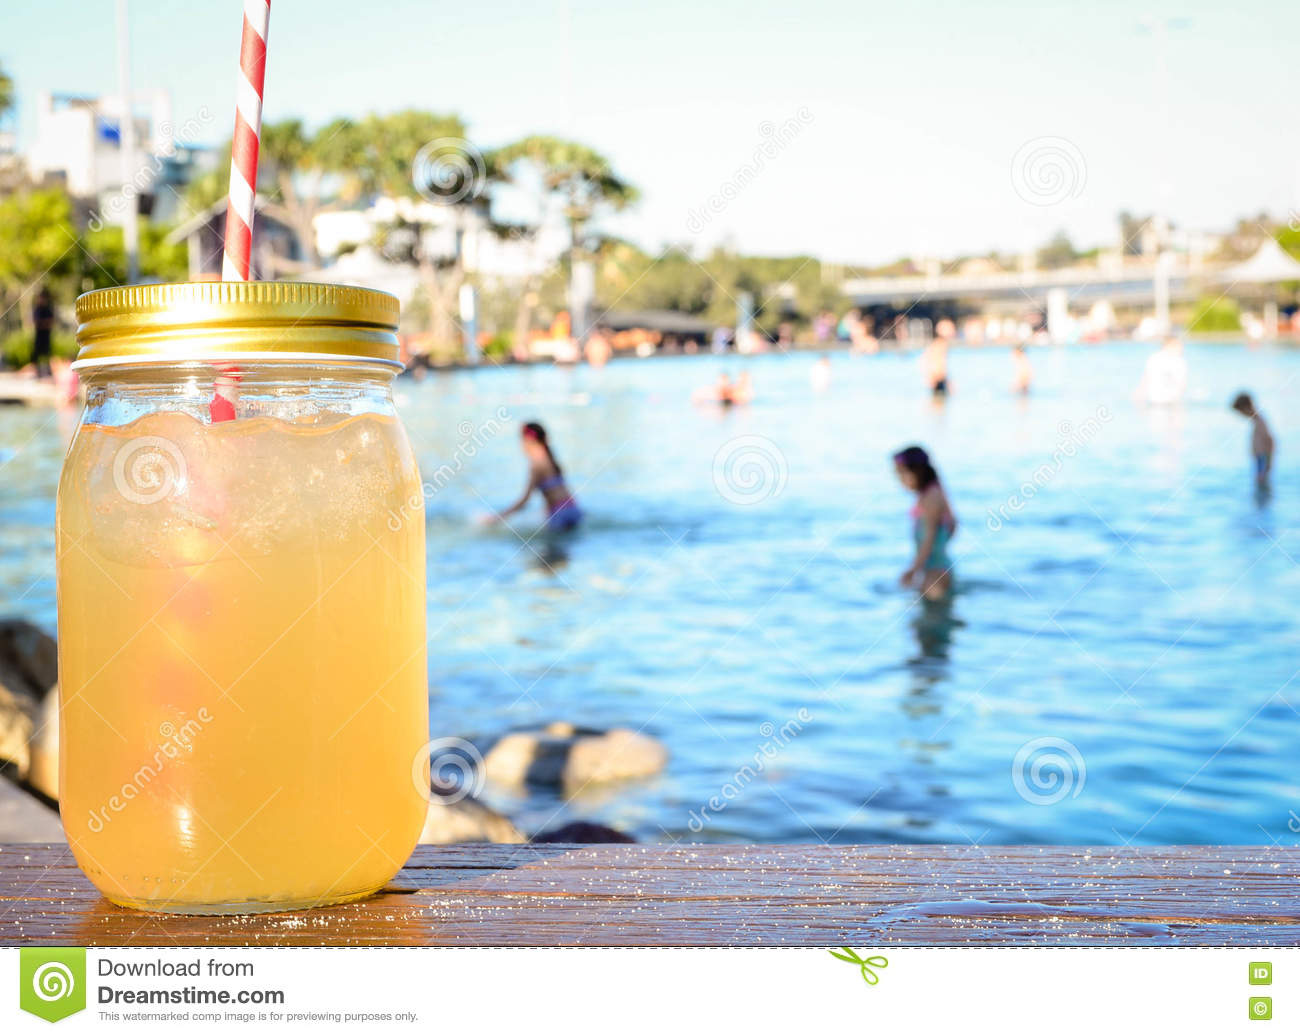 Download Iced Mojito On A Hot Summer Day Stock Image - Image of relaxation, maison: 75073851